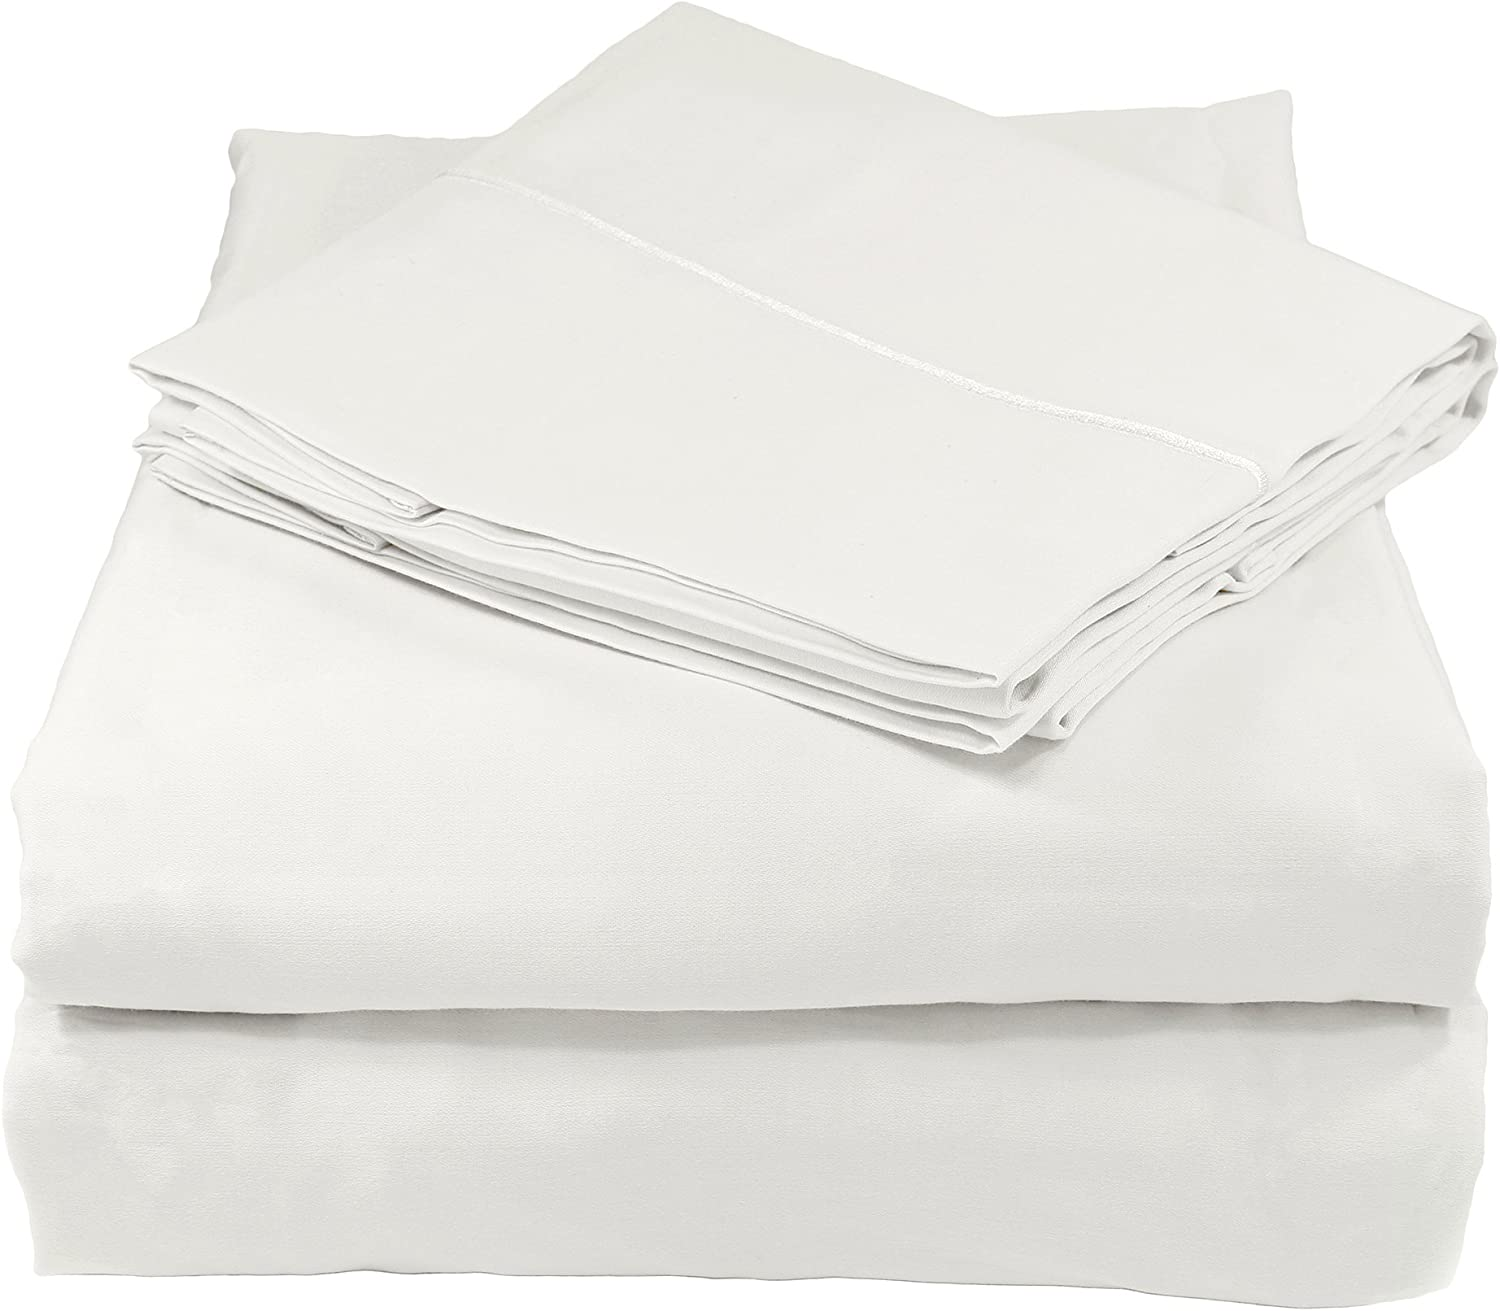 Whisper Organics Organic Bed Sheets Set 400 Thread Count Made from 100% GOTS Cotton (Queen,White)